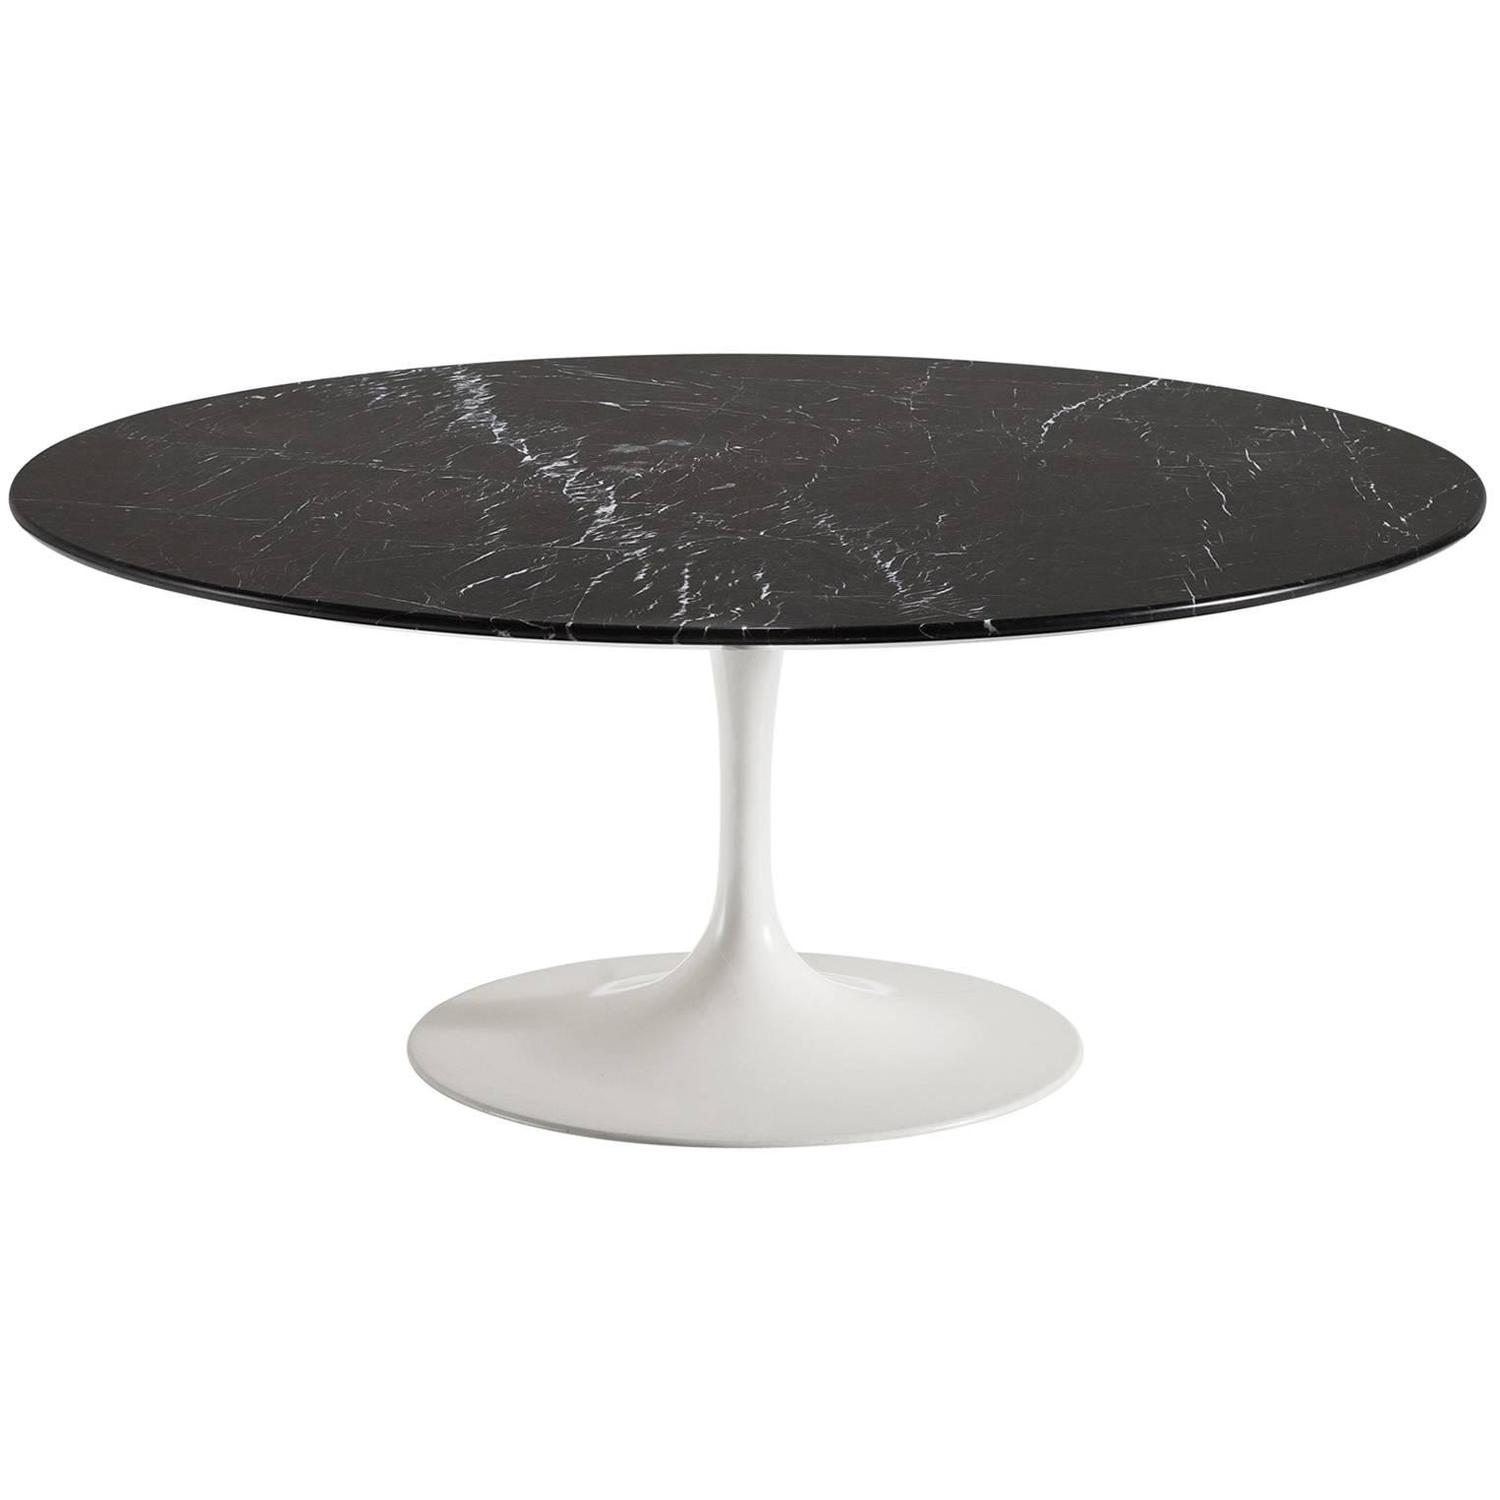 Eero Saarinen Coffee and Cocktail Tables 15 For Sale at 1stdibs